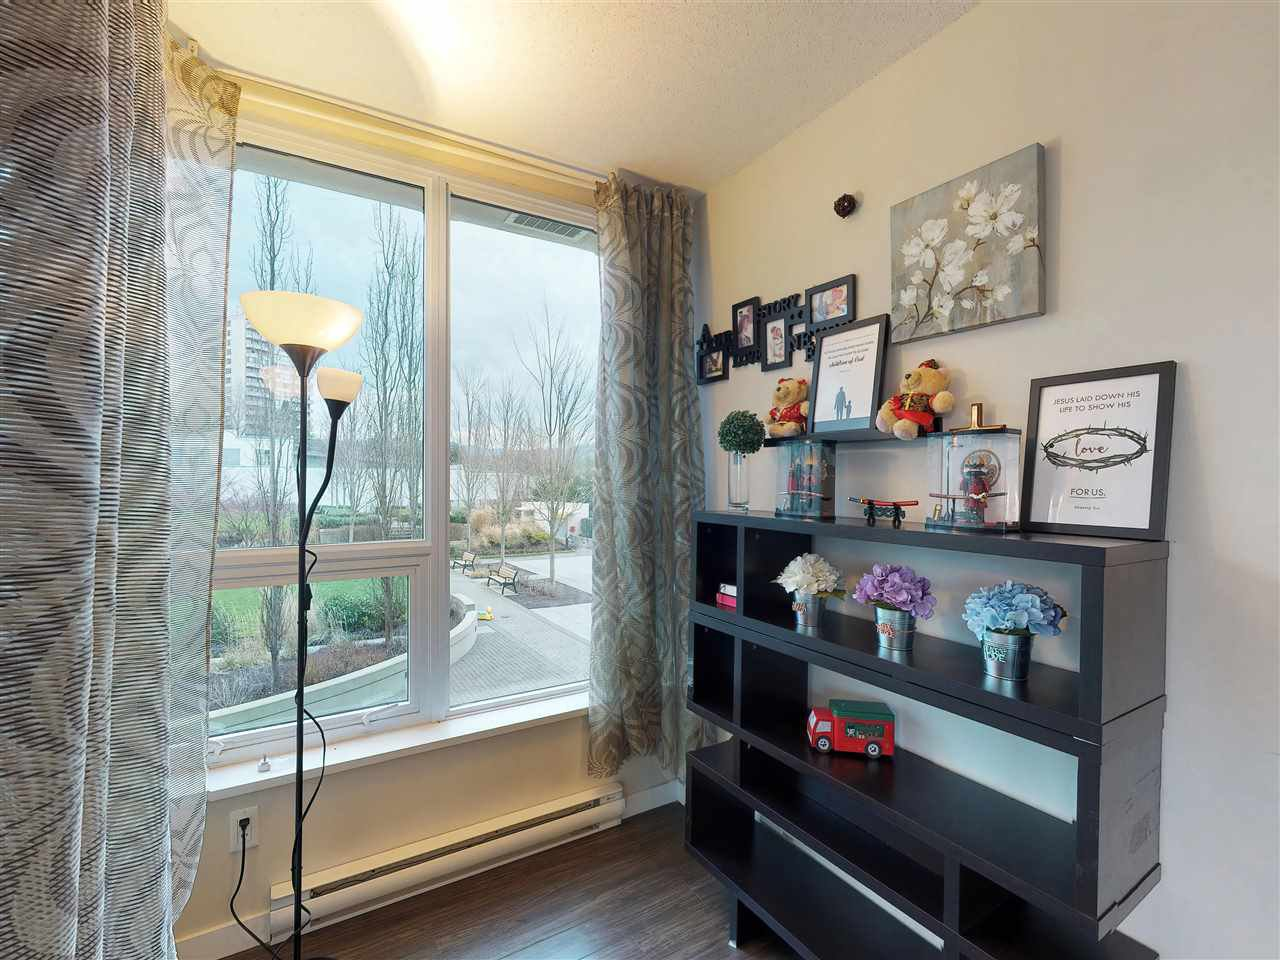 Photo 13: Photos: 405 2232 DOUGLAS ROAD in Burnaby: Brentwood Park Condo for sale (Burnaby North)  : MLS®# R2347040